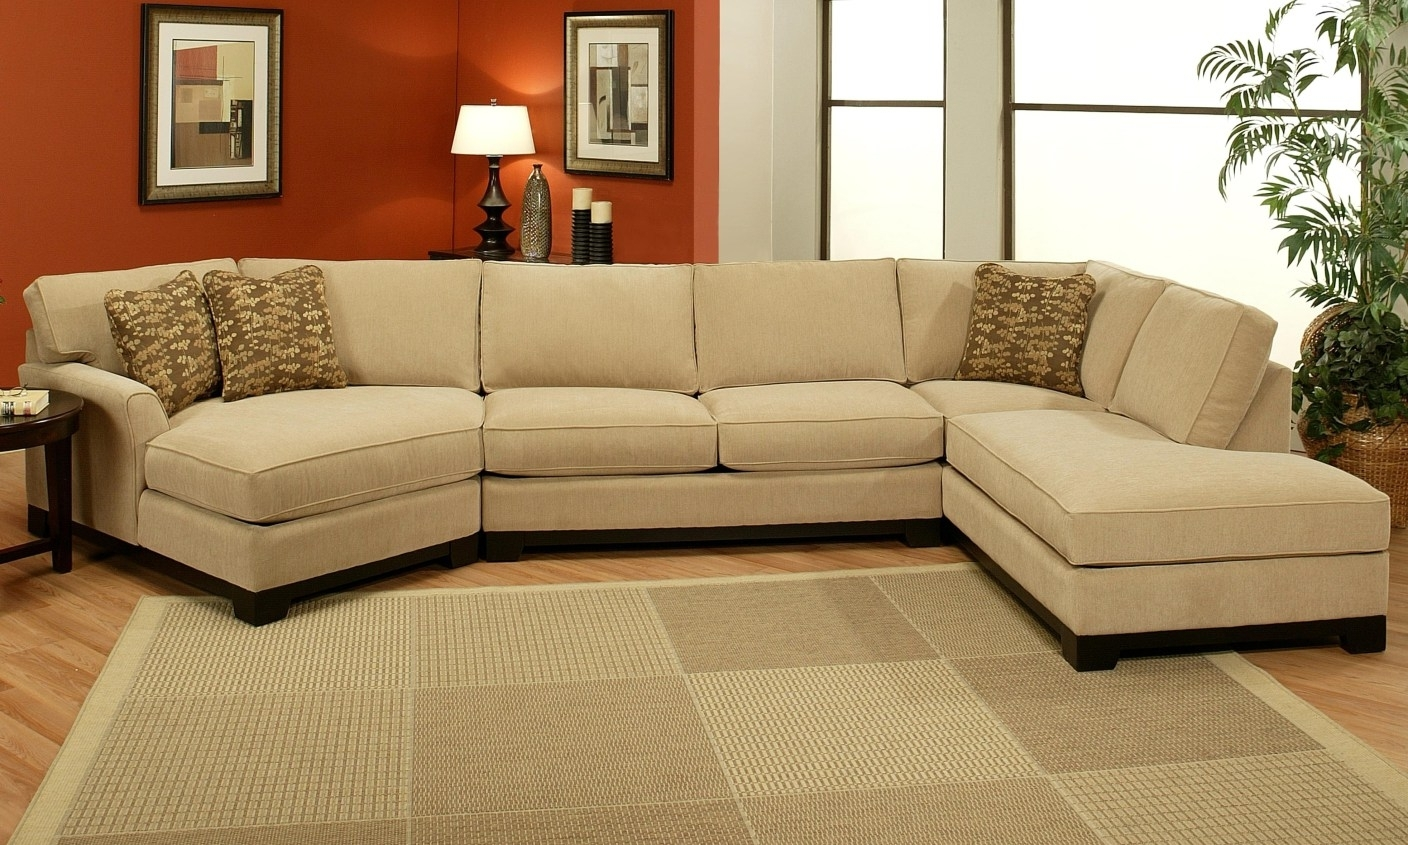 Current Sofa : Sectional Sofa With Cuddler Chaise Charm Sectionals With With Regard To Cuddler Chaises (View 4 of 15)